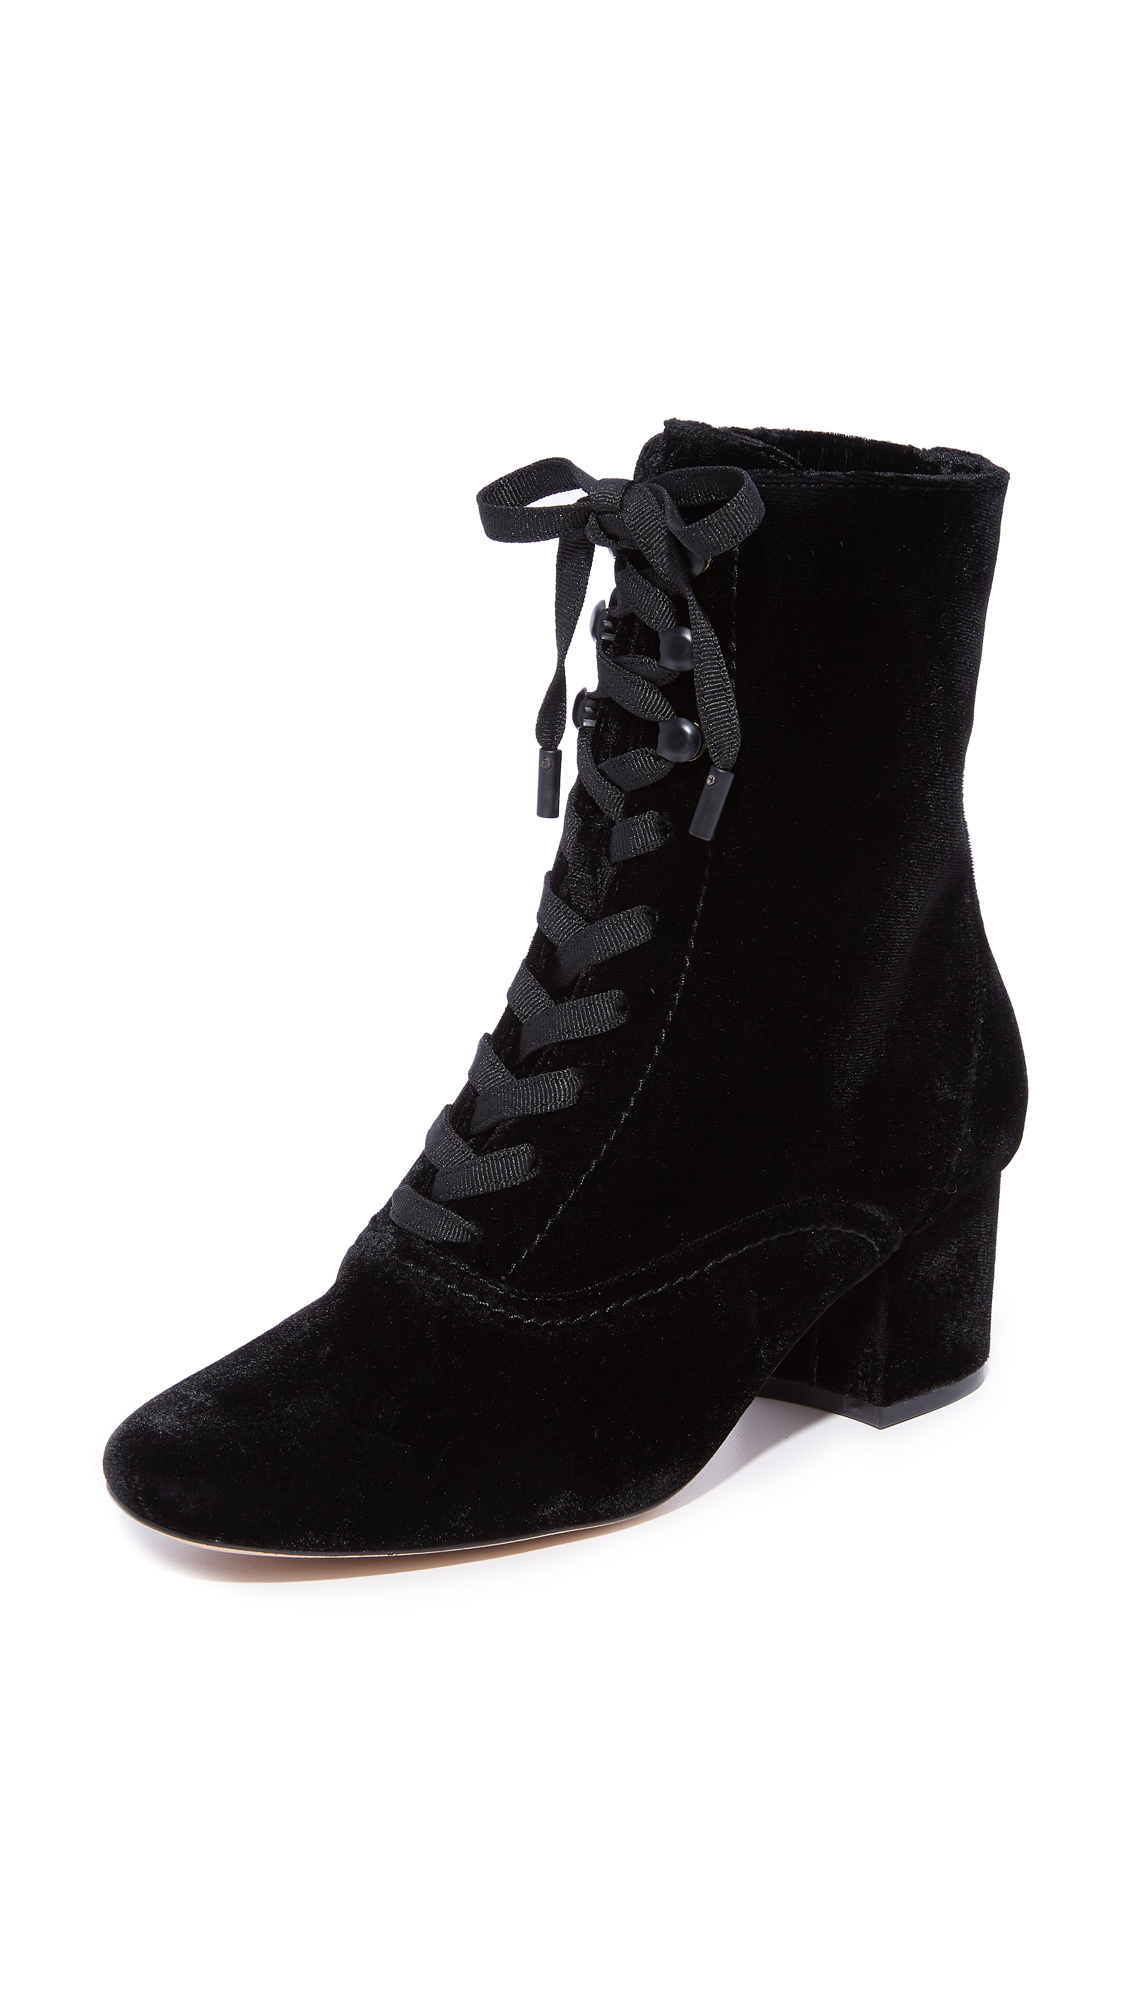 Joie Yulia Booties - Black